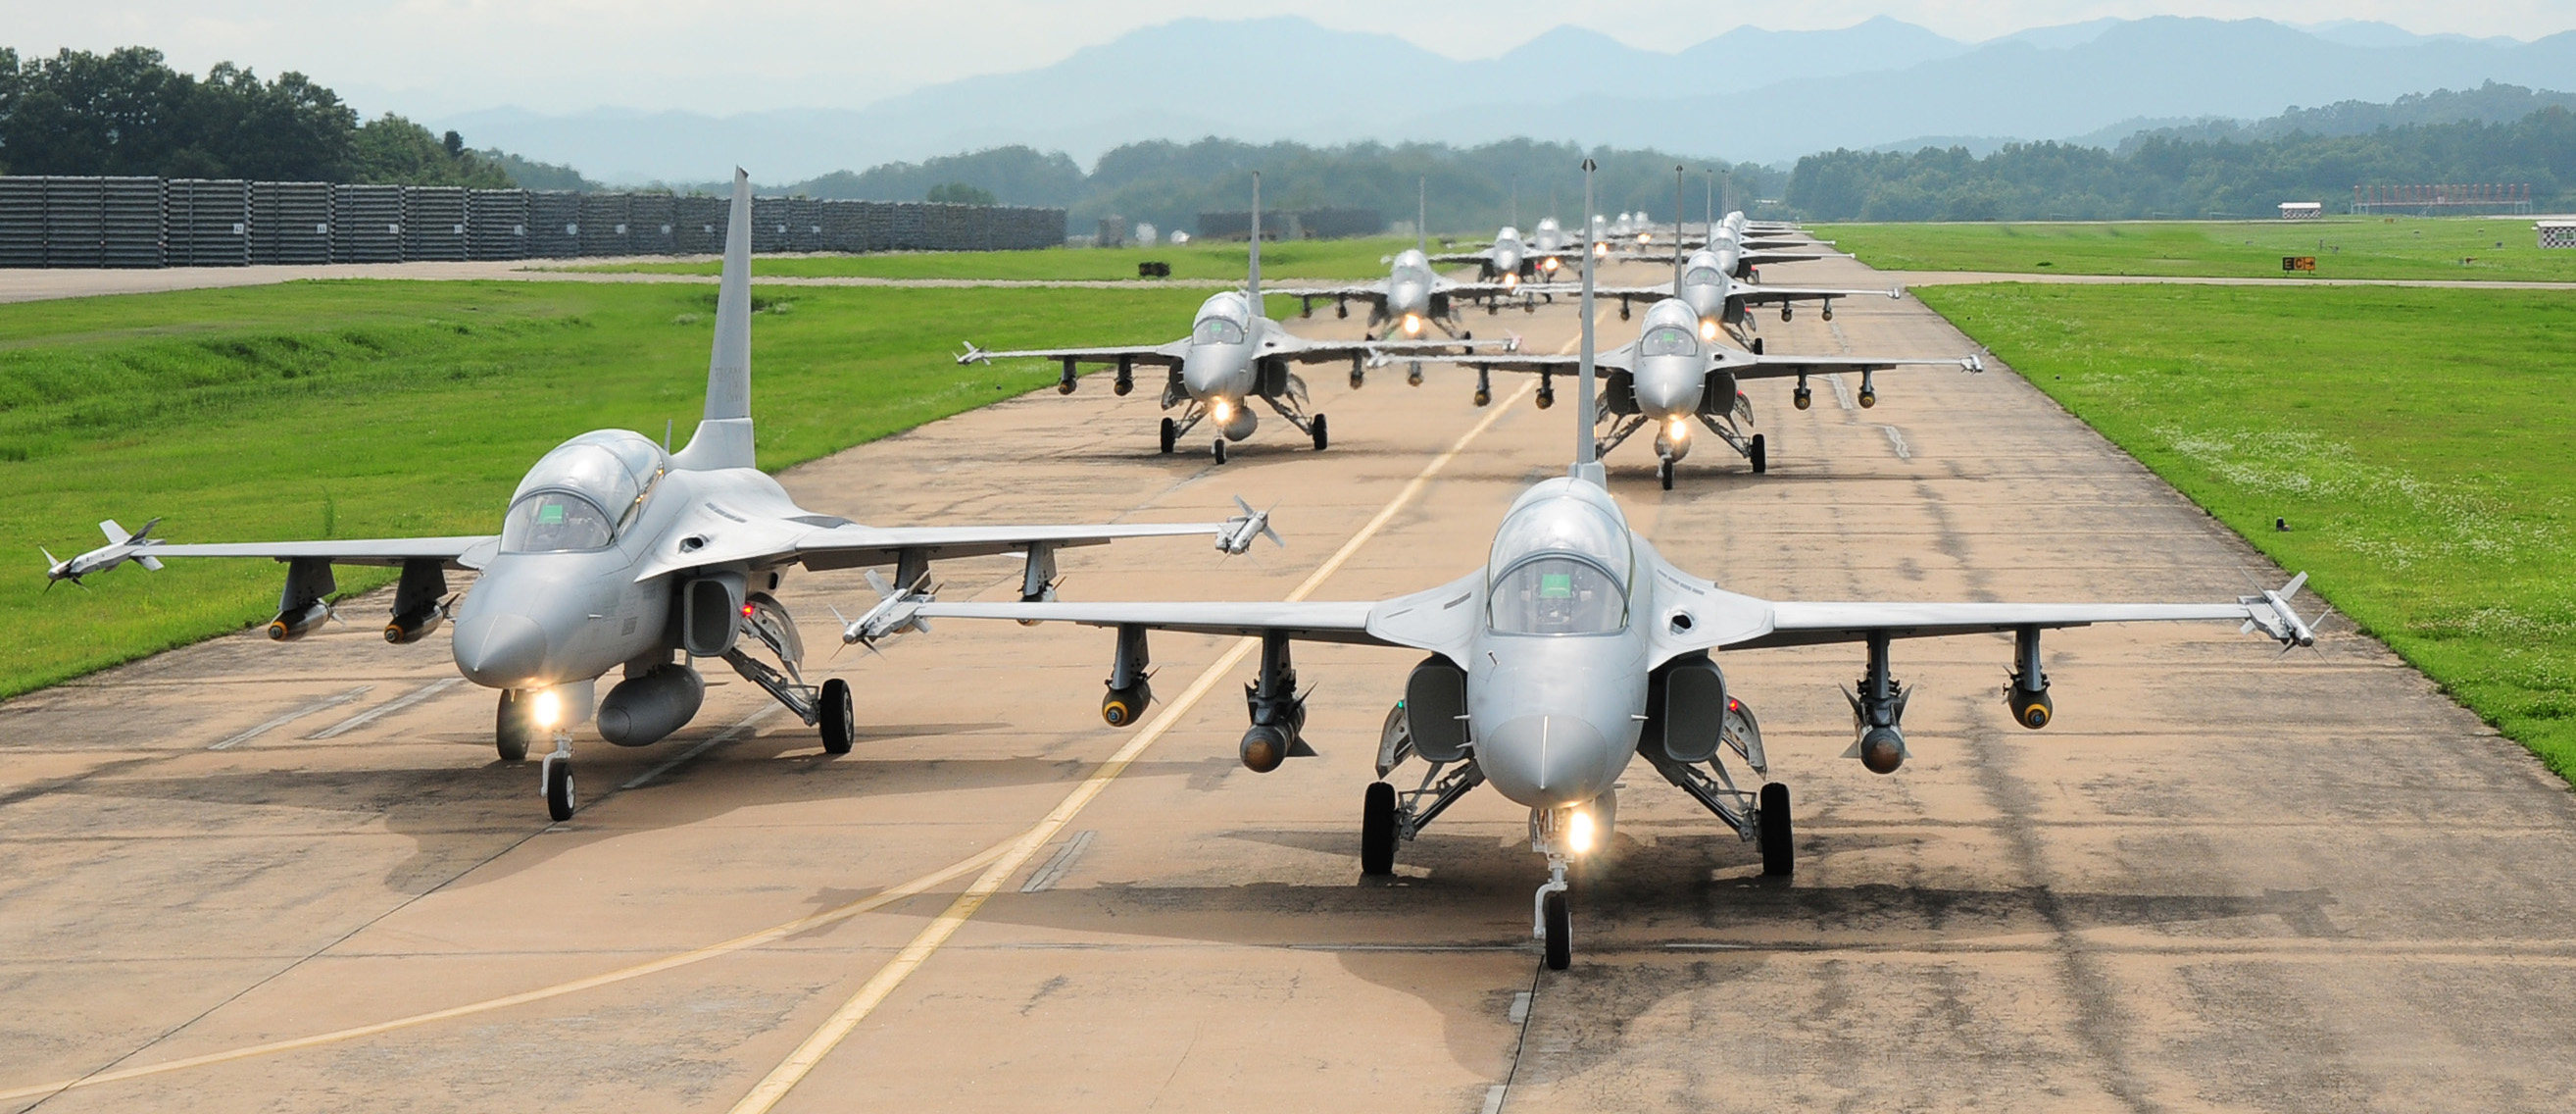 Korean TA-50 trainer/light attack aircraft taxi on a runway.